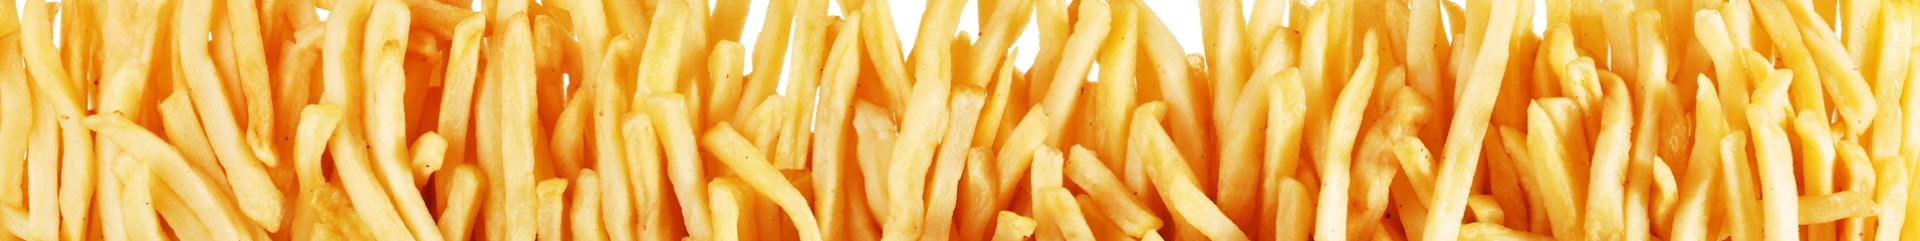 frozen pre-fried french fries, French fries